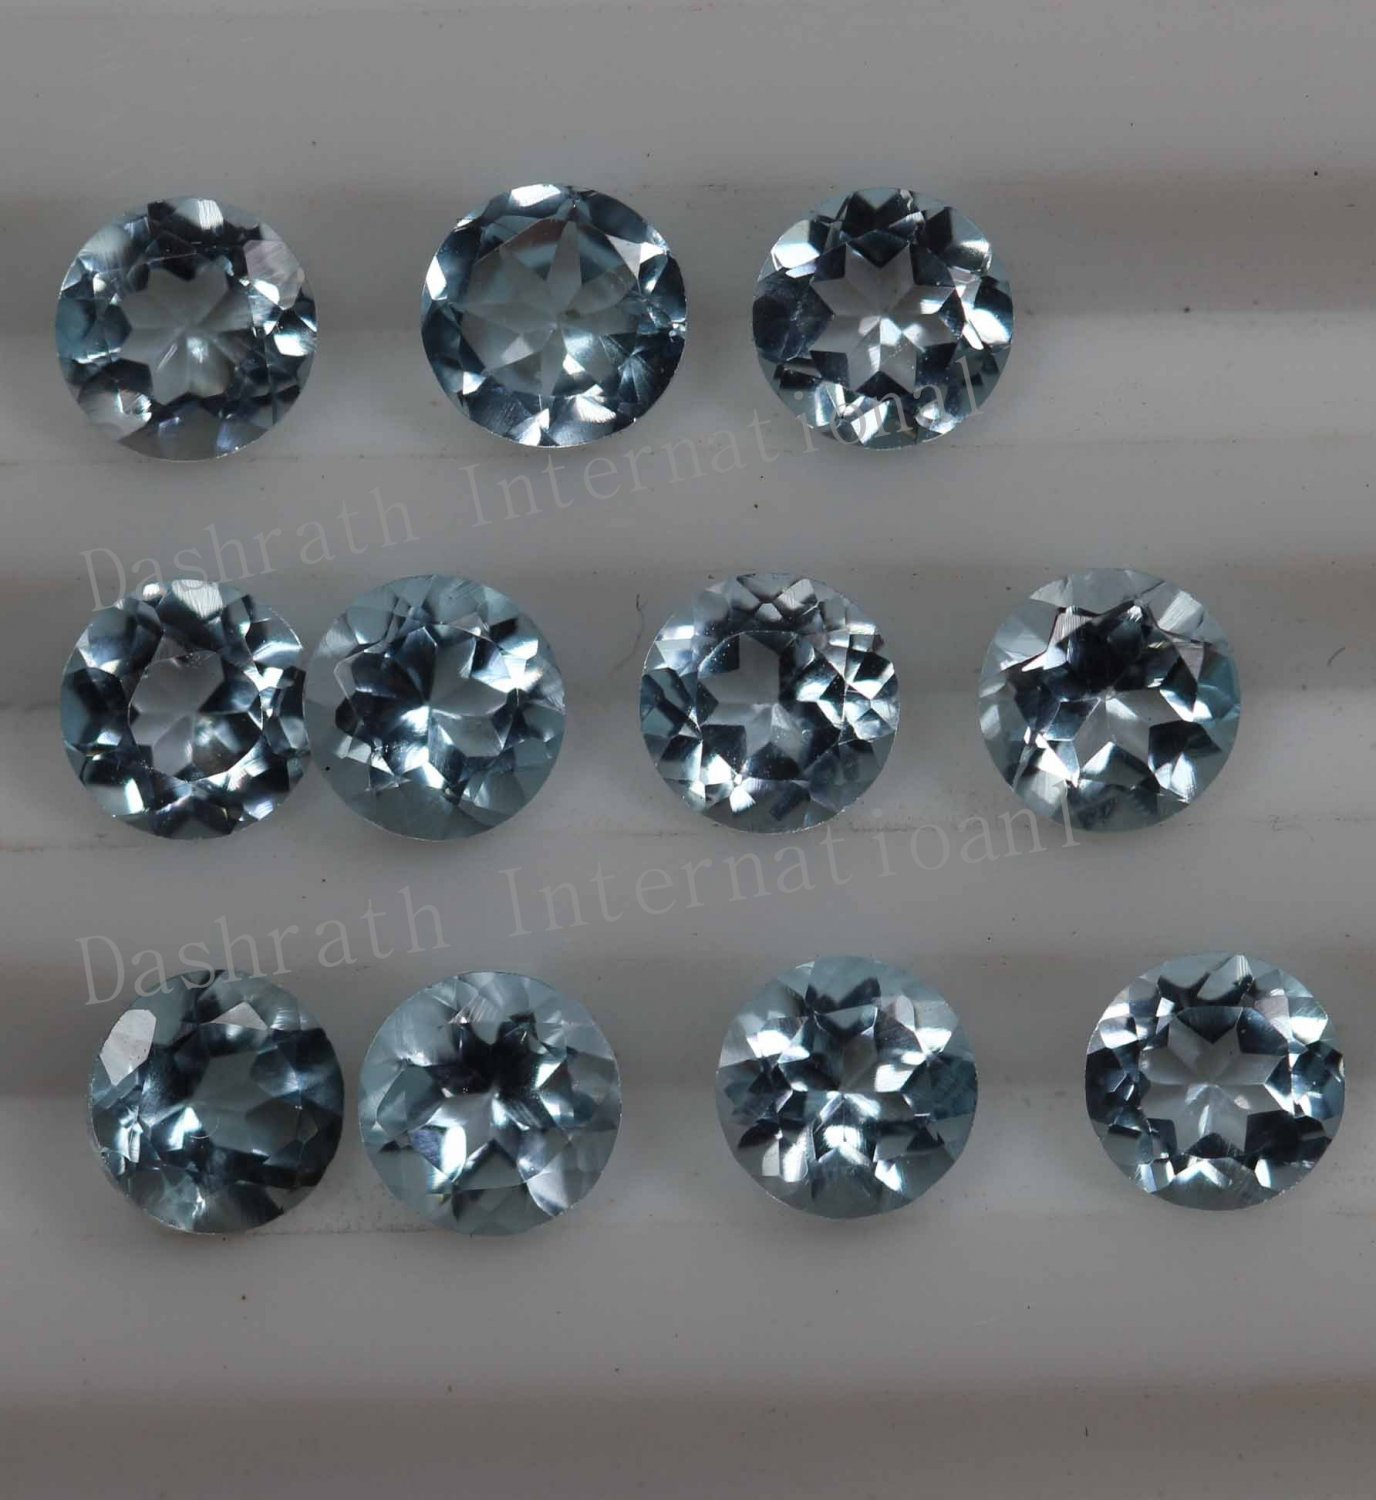 6mmNatural Sky Blue Topaz Faceted Cut Round 1 Piece  Blue Color  Top Quality Loose Gemstone